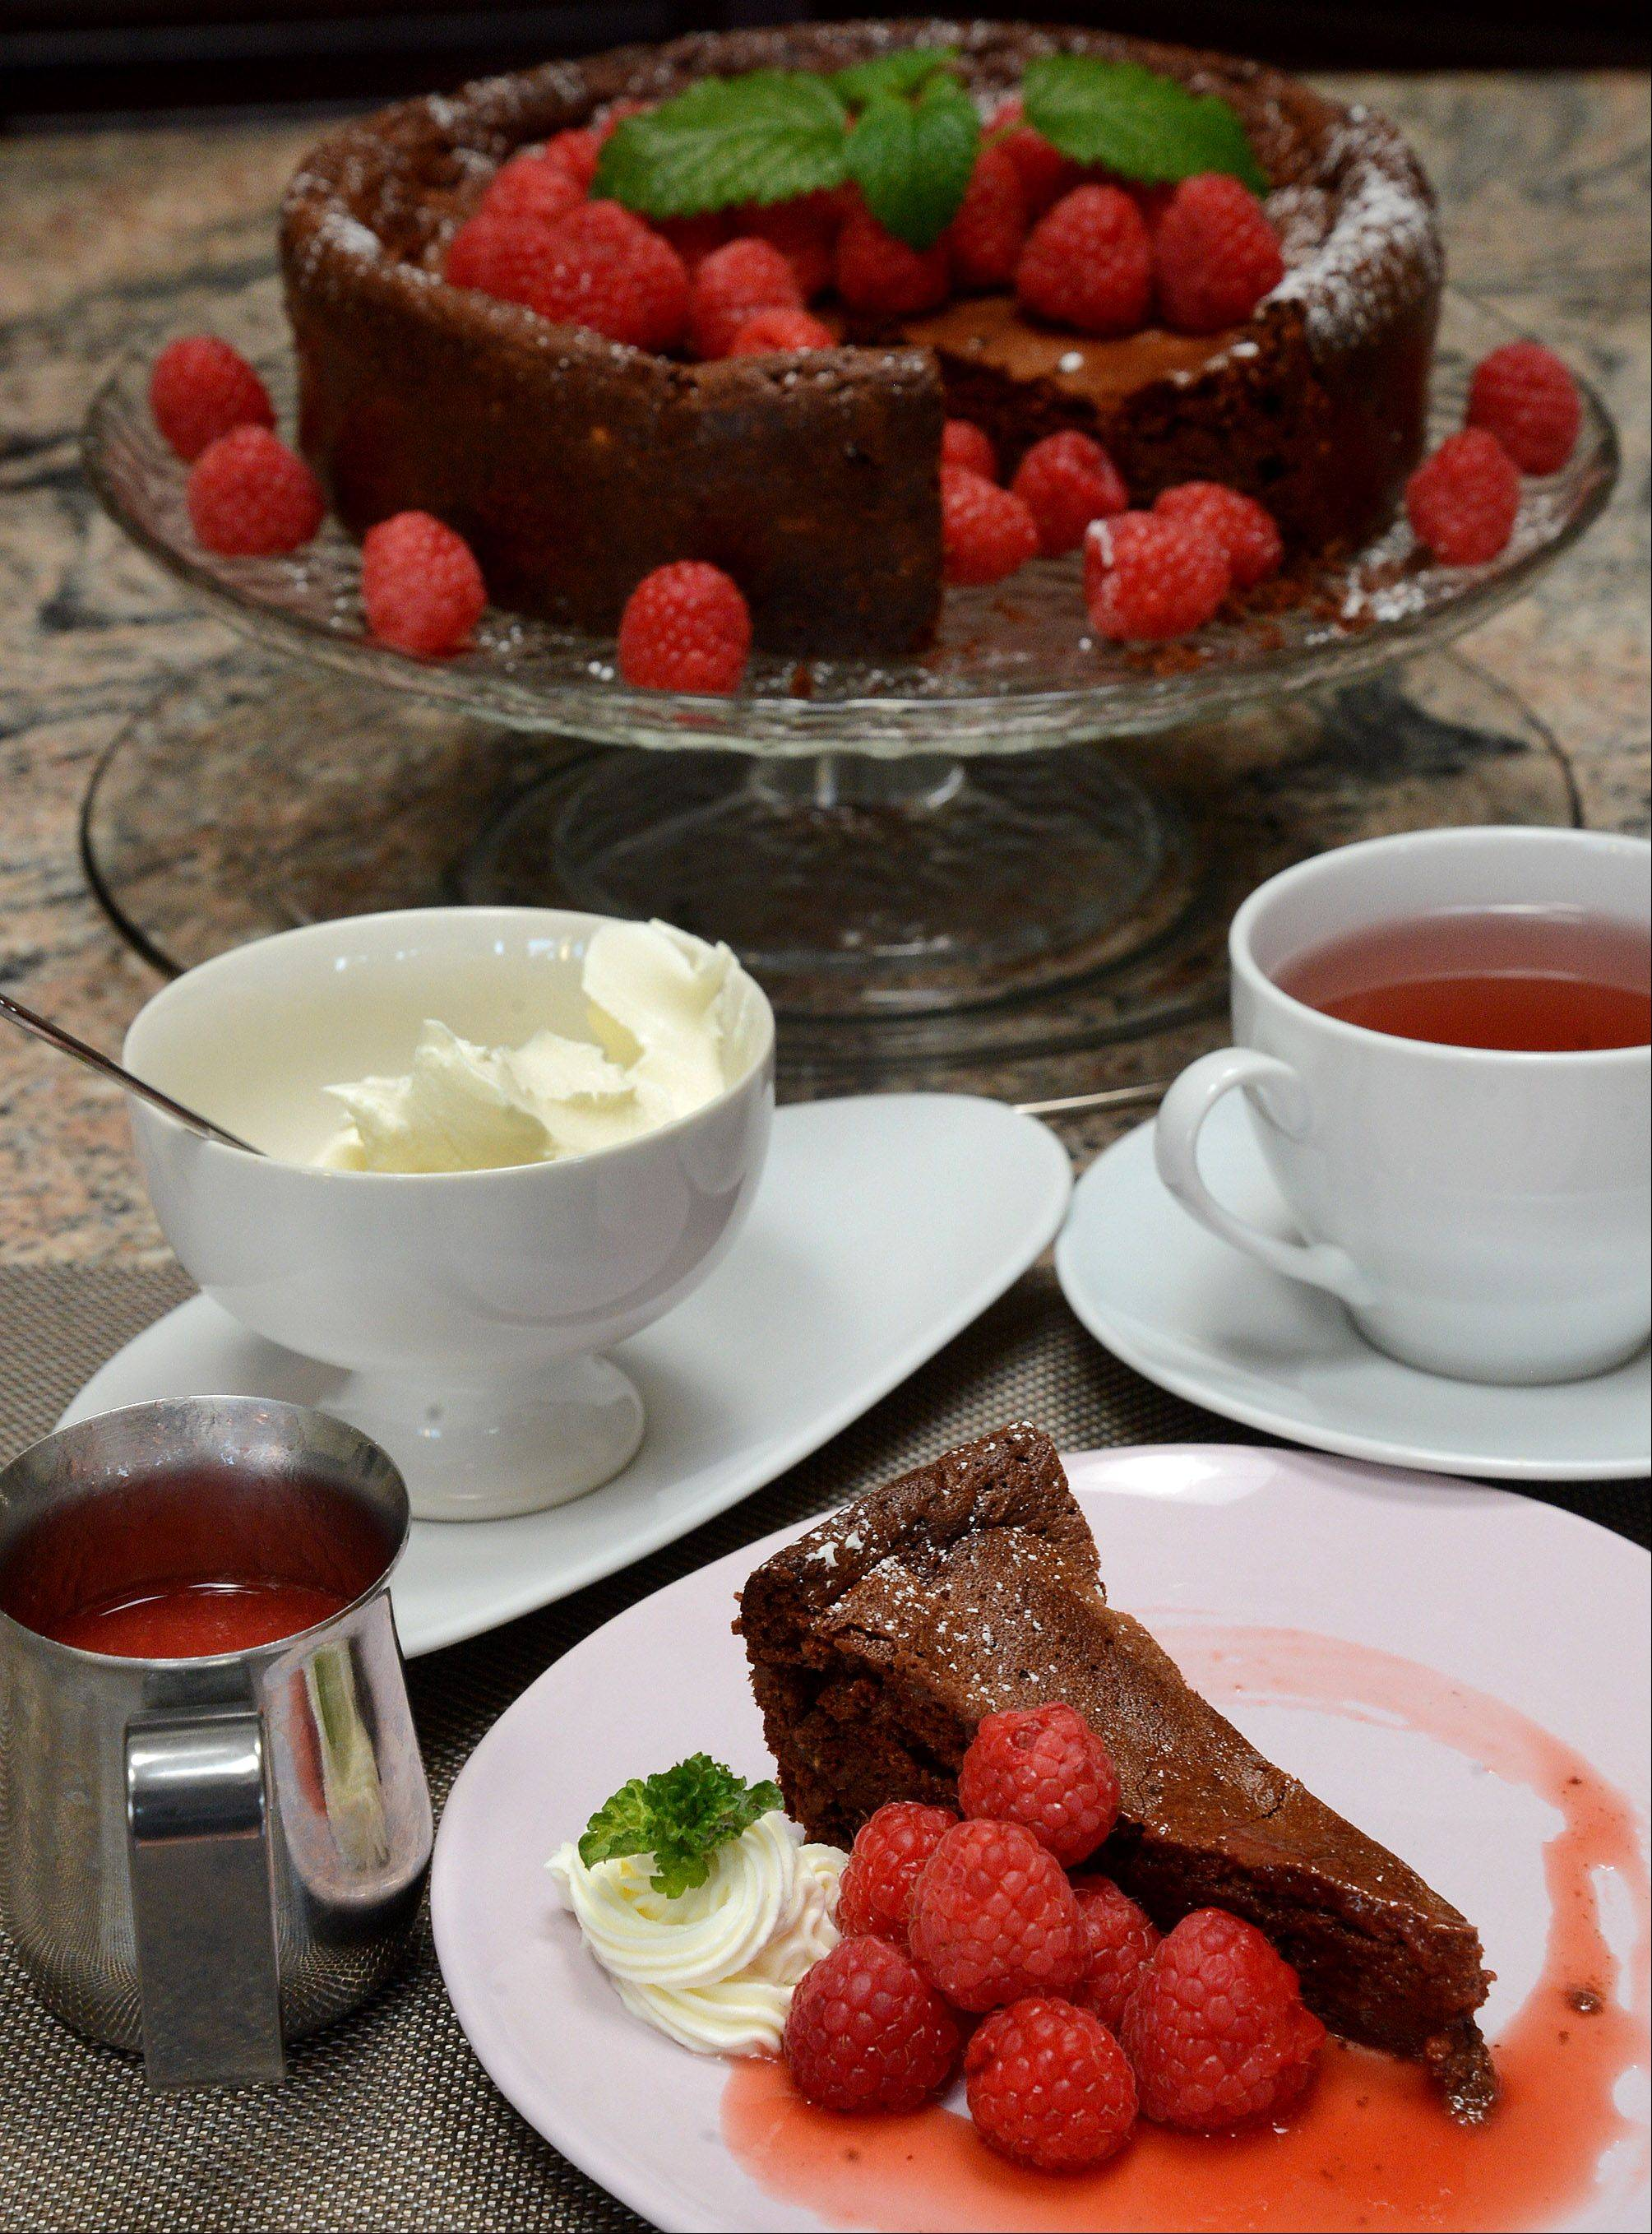 Fresh raspberry coulis accents a rich yet airy chocolate cake.